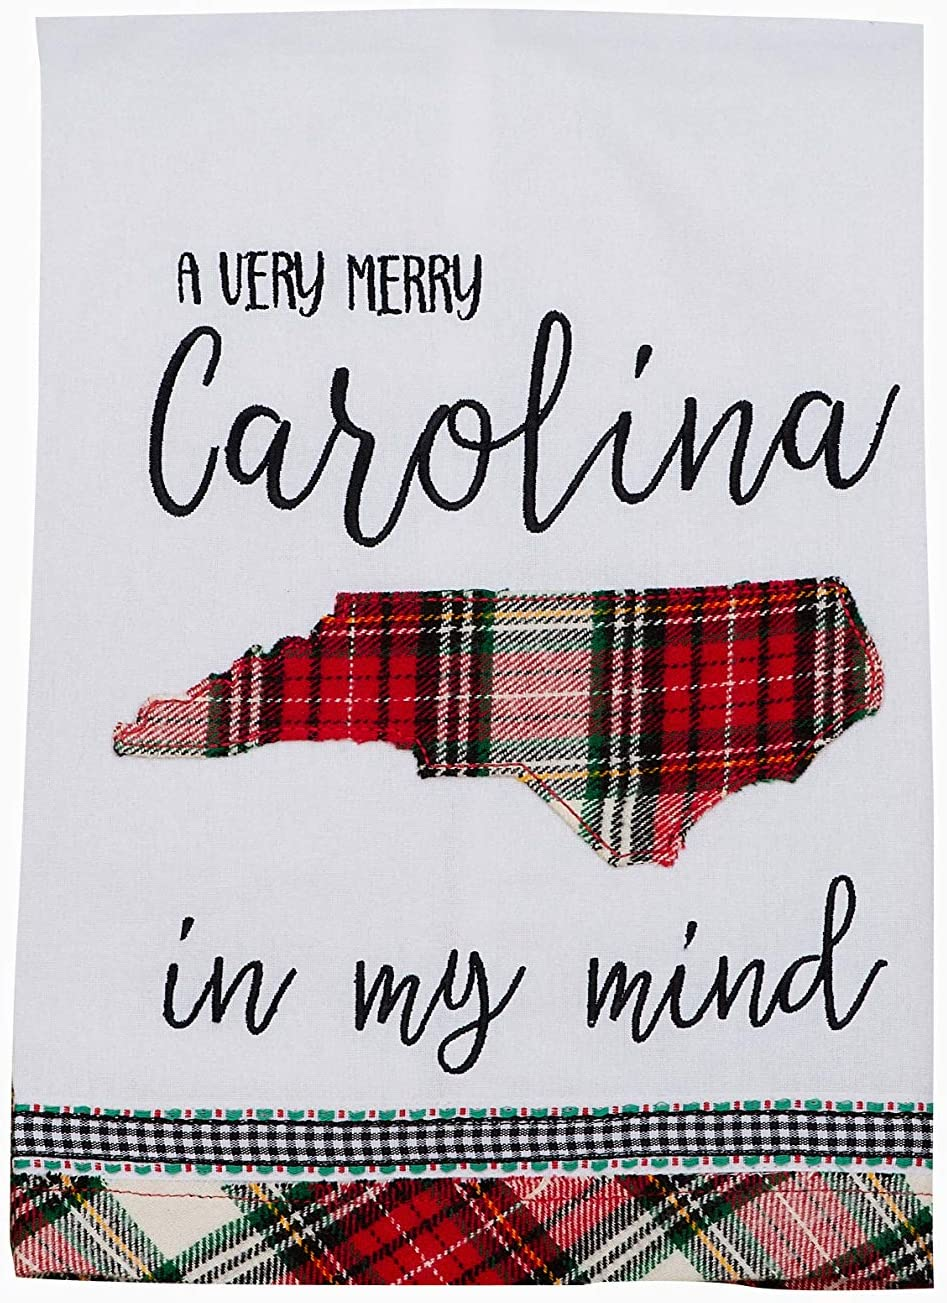 Glory Haus Home Multicolor, Collegiate Tea Towel 19x25x0.1 inch. (Carolina in My Mind)